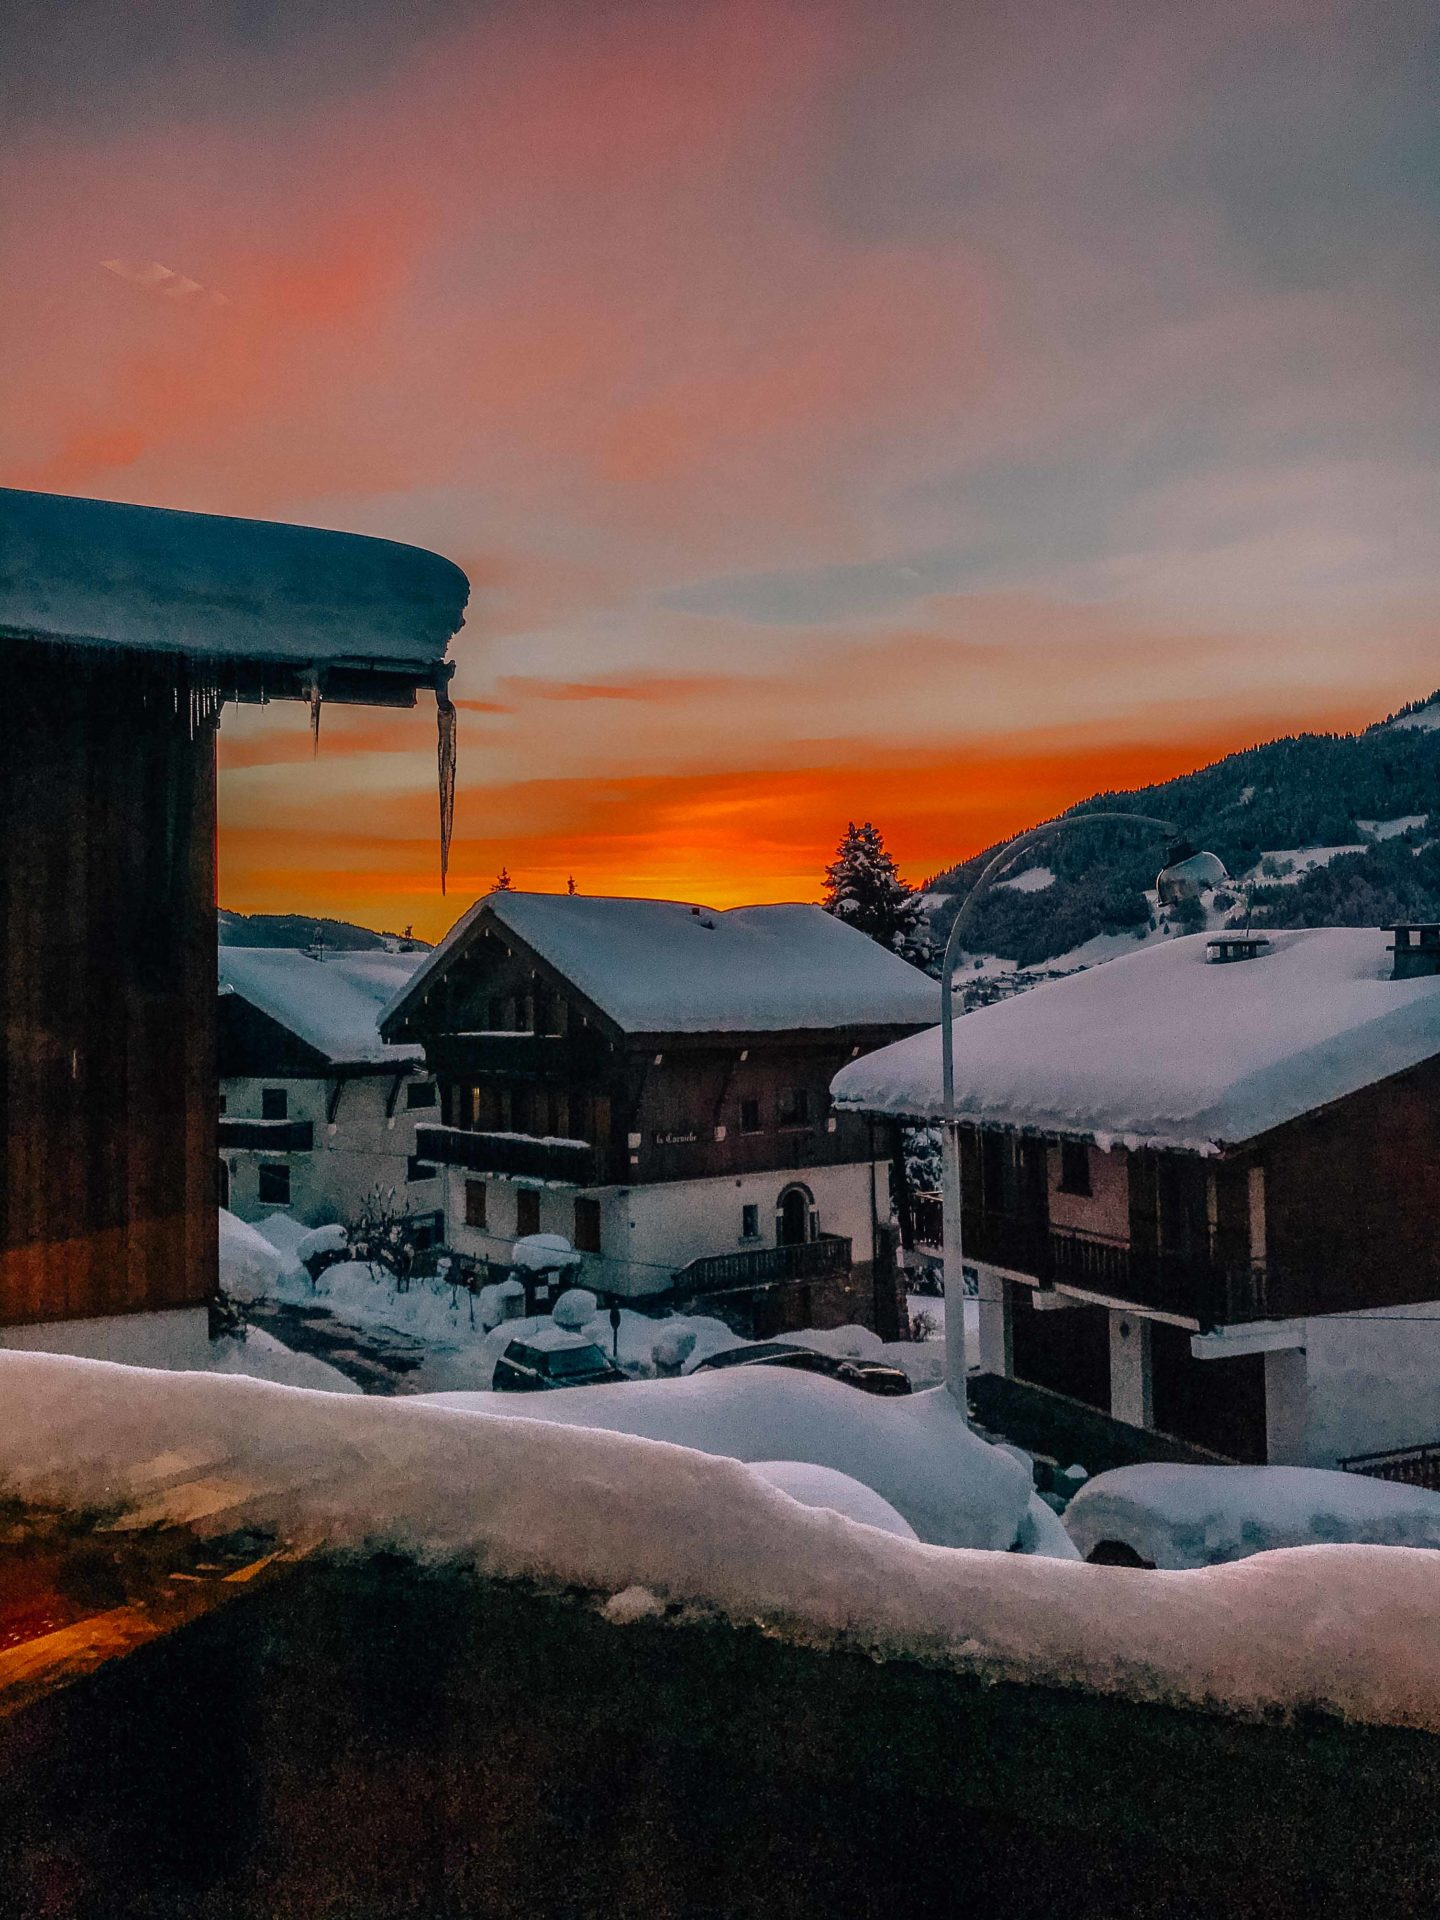 Sunset above the mountains of Megeve